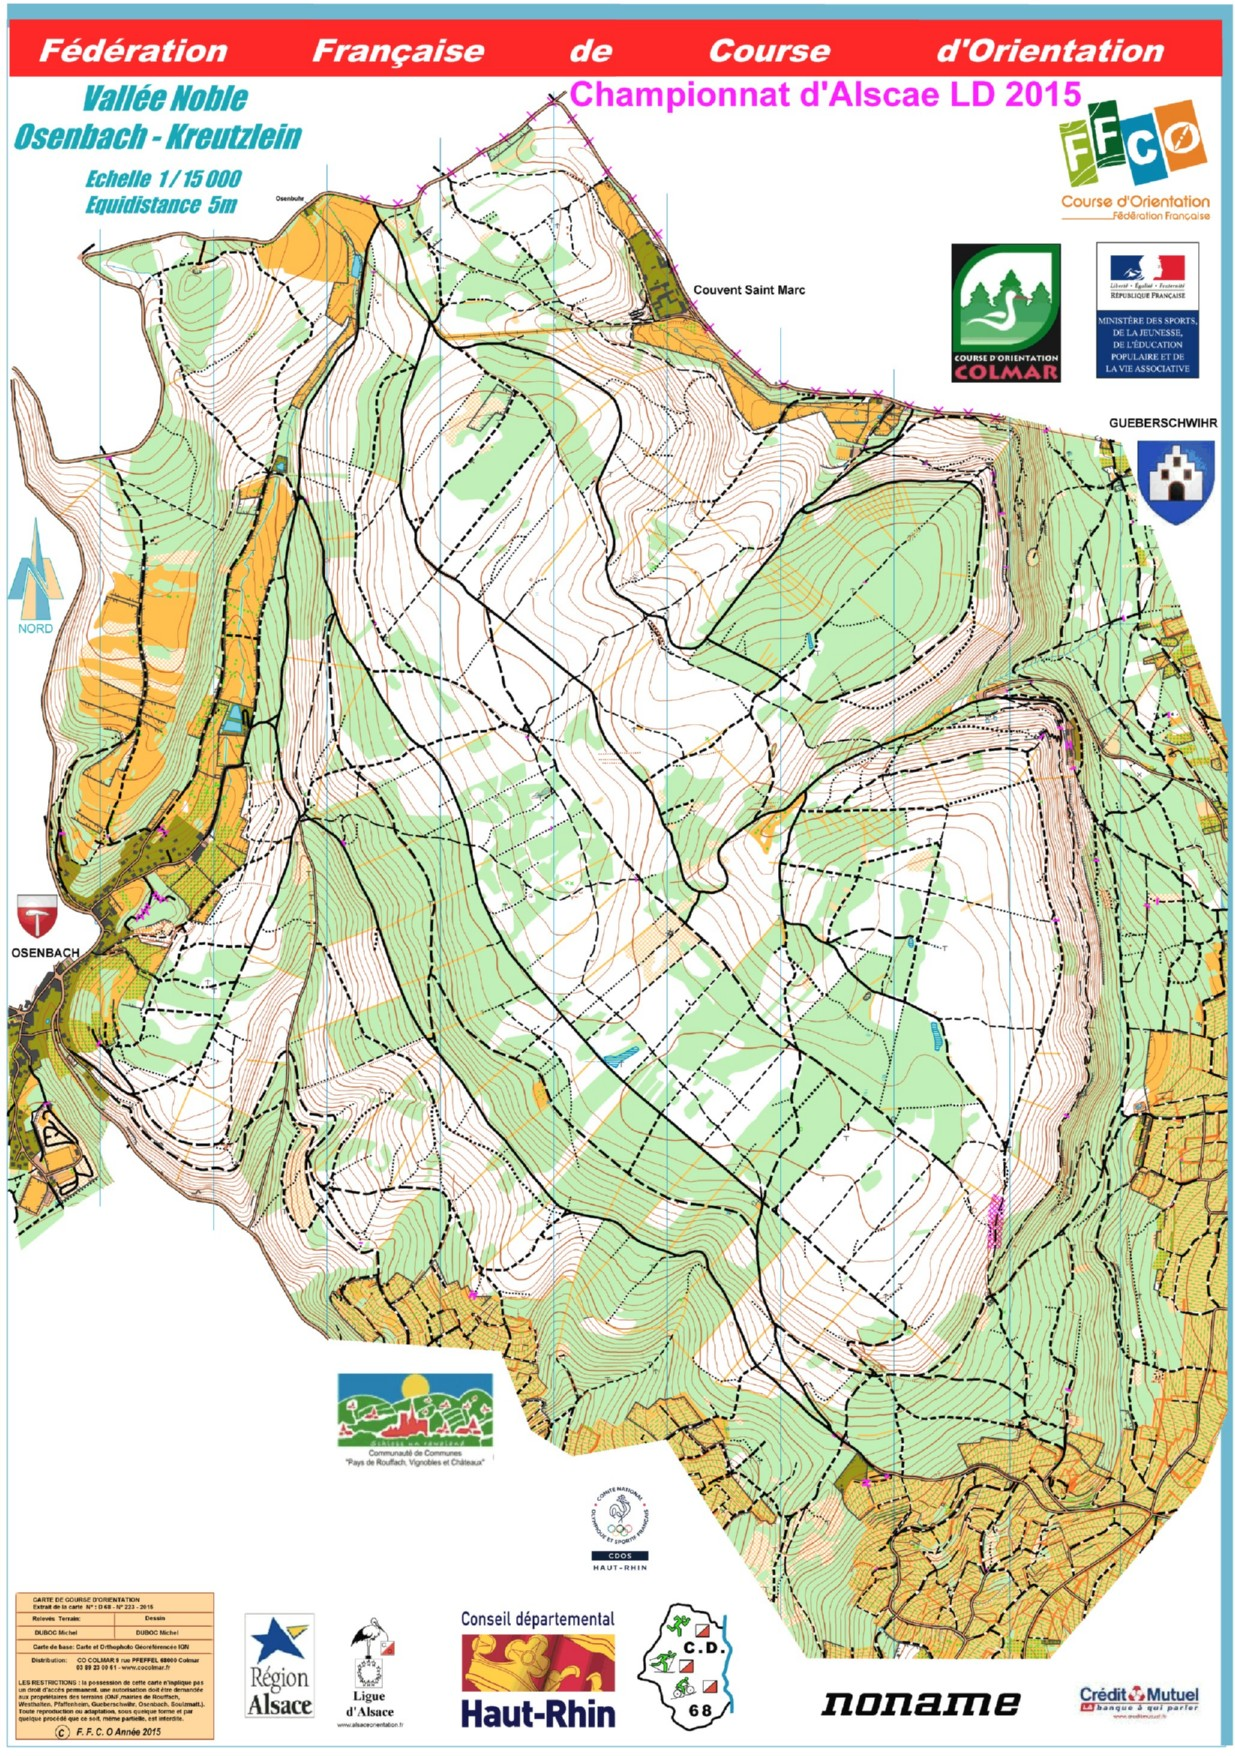 Reg O VTT LD Colmar May 25th 2015 Orienteering Map from matracefr